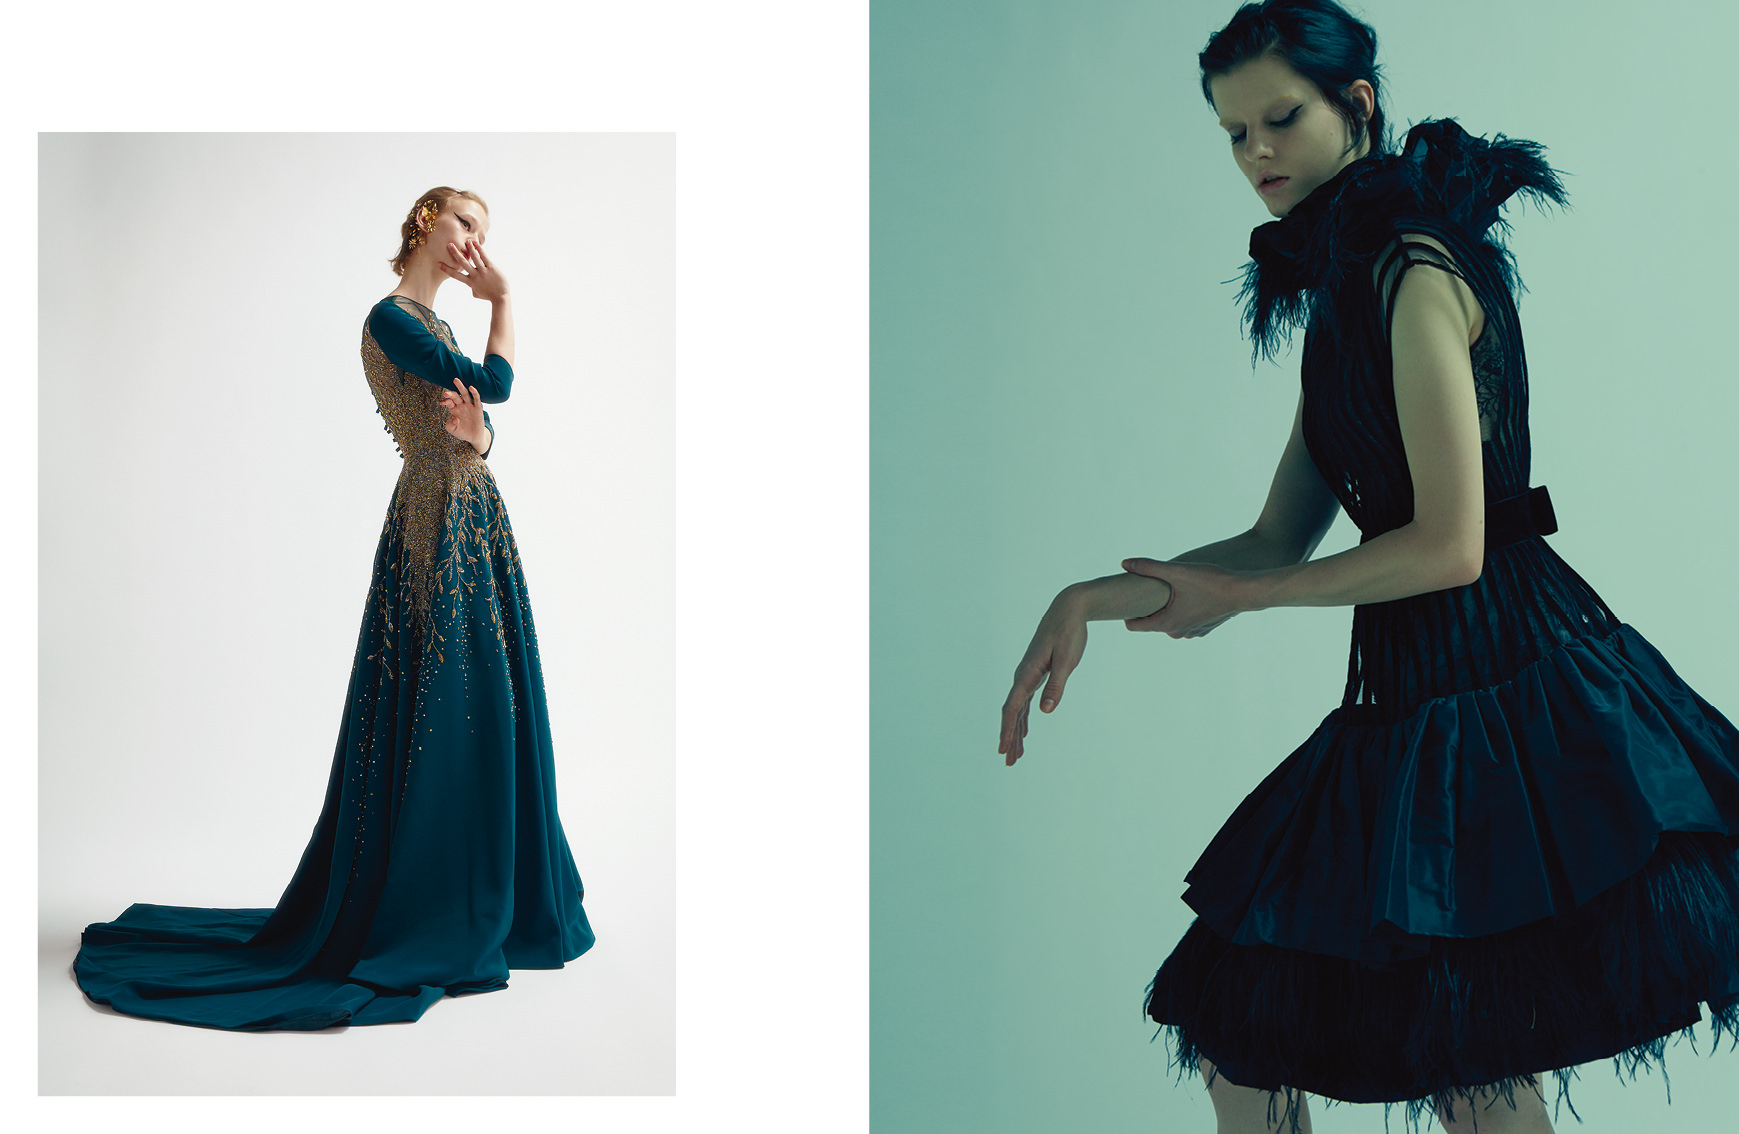 Left : Silk dress embroidered with cristals and earrings, GEORGES HOBEIKA COUTURE. Right : Cocktail dress with tulle and velvet stripes withtaffeta and feathers frills, GEORGES CHAKRA COUTURE.